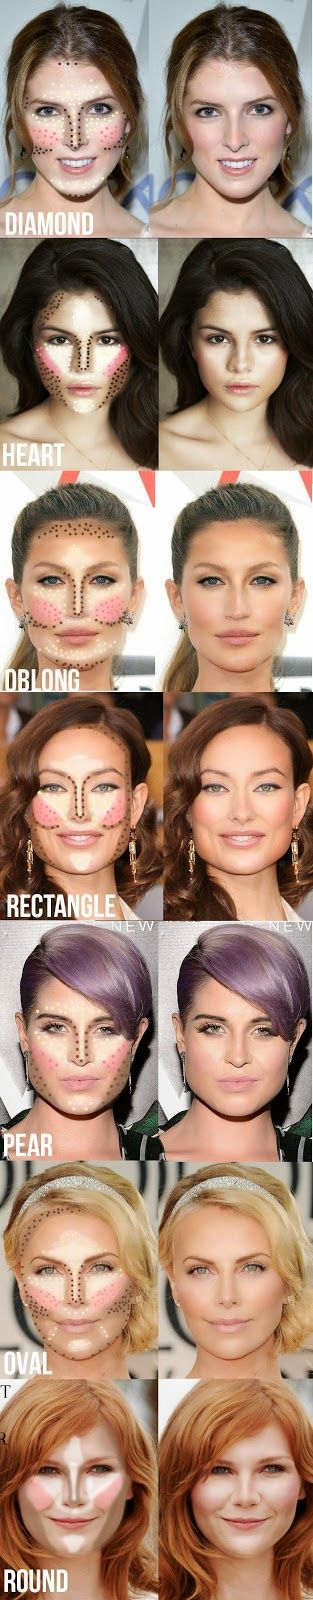 Oblong Face- style close to top of head add volume on sides to create illusion. Diamond Face- increase fullness at jaw & forehead, hair close to head at cheekbones. Round Face- style height/volume on top & closeness/no volume on sides